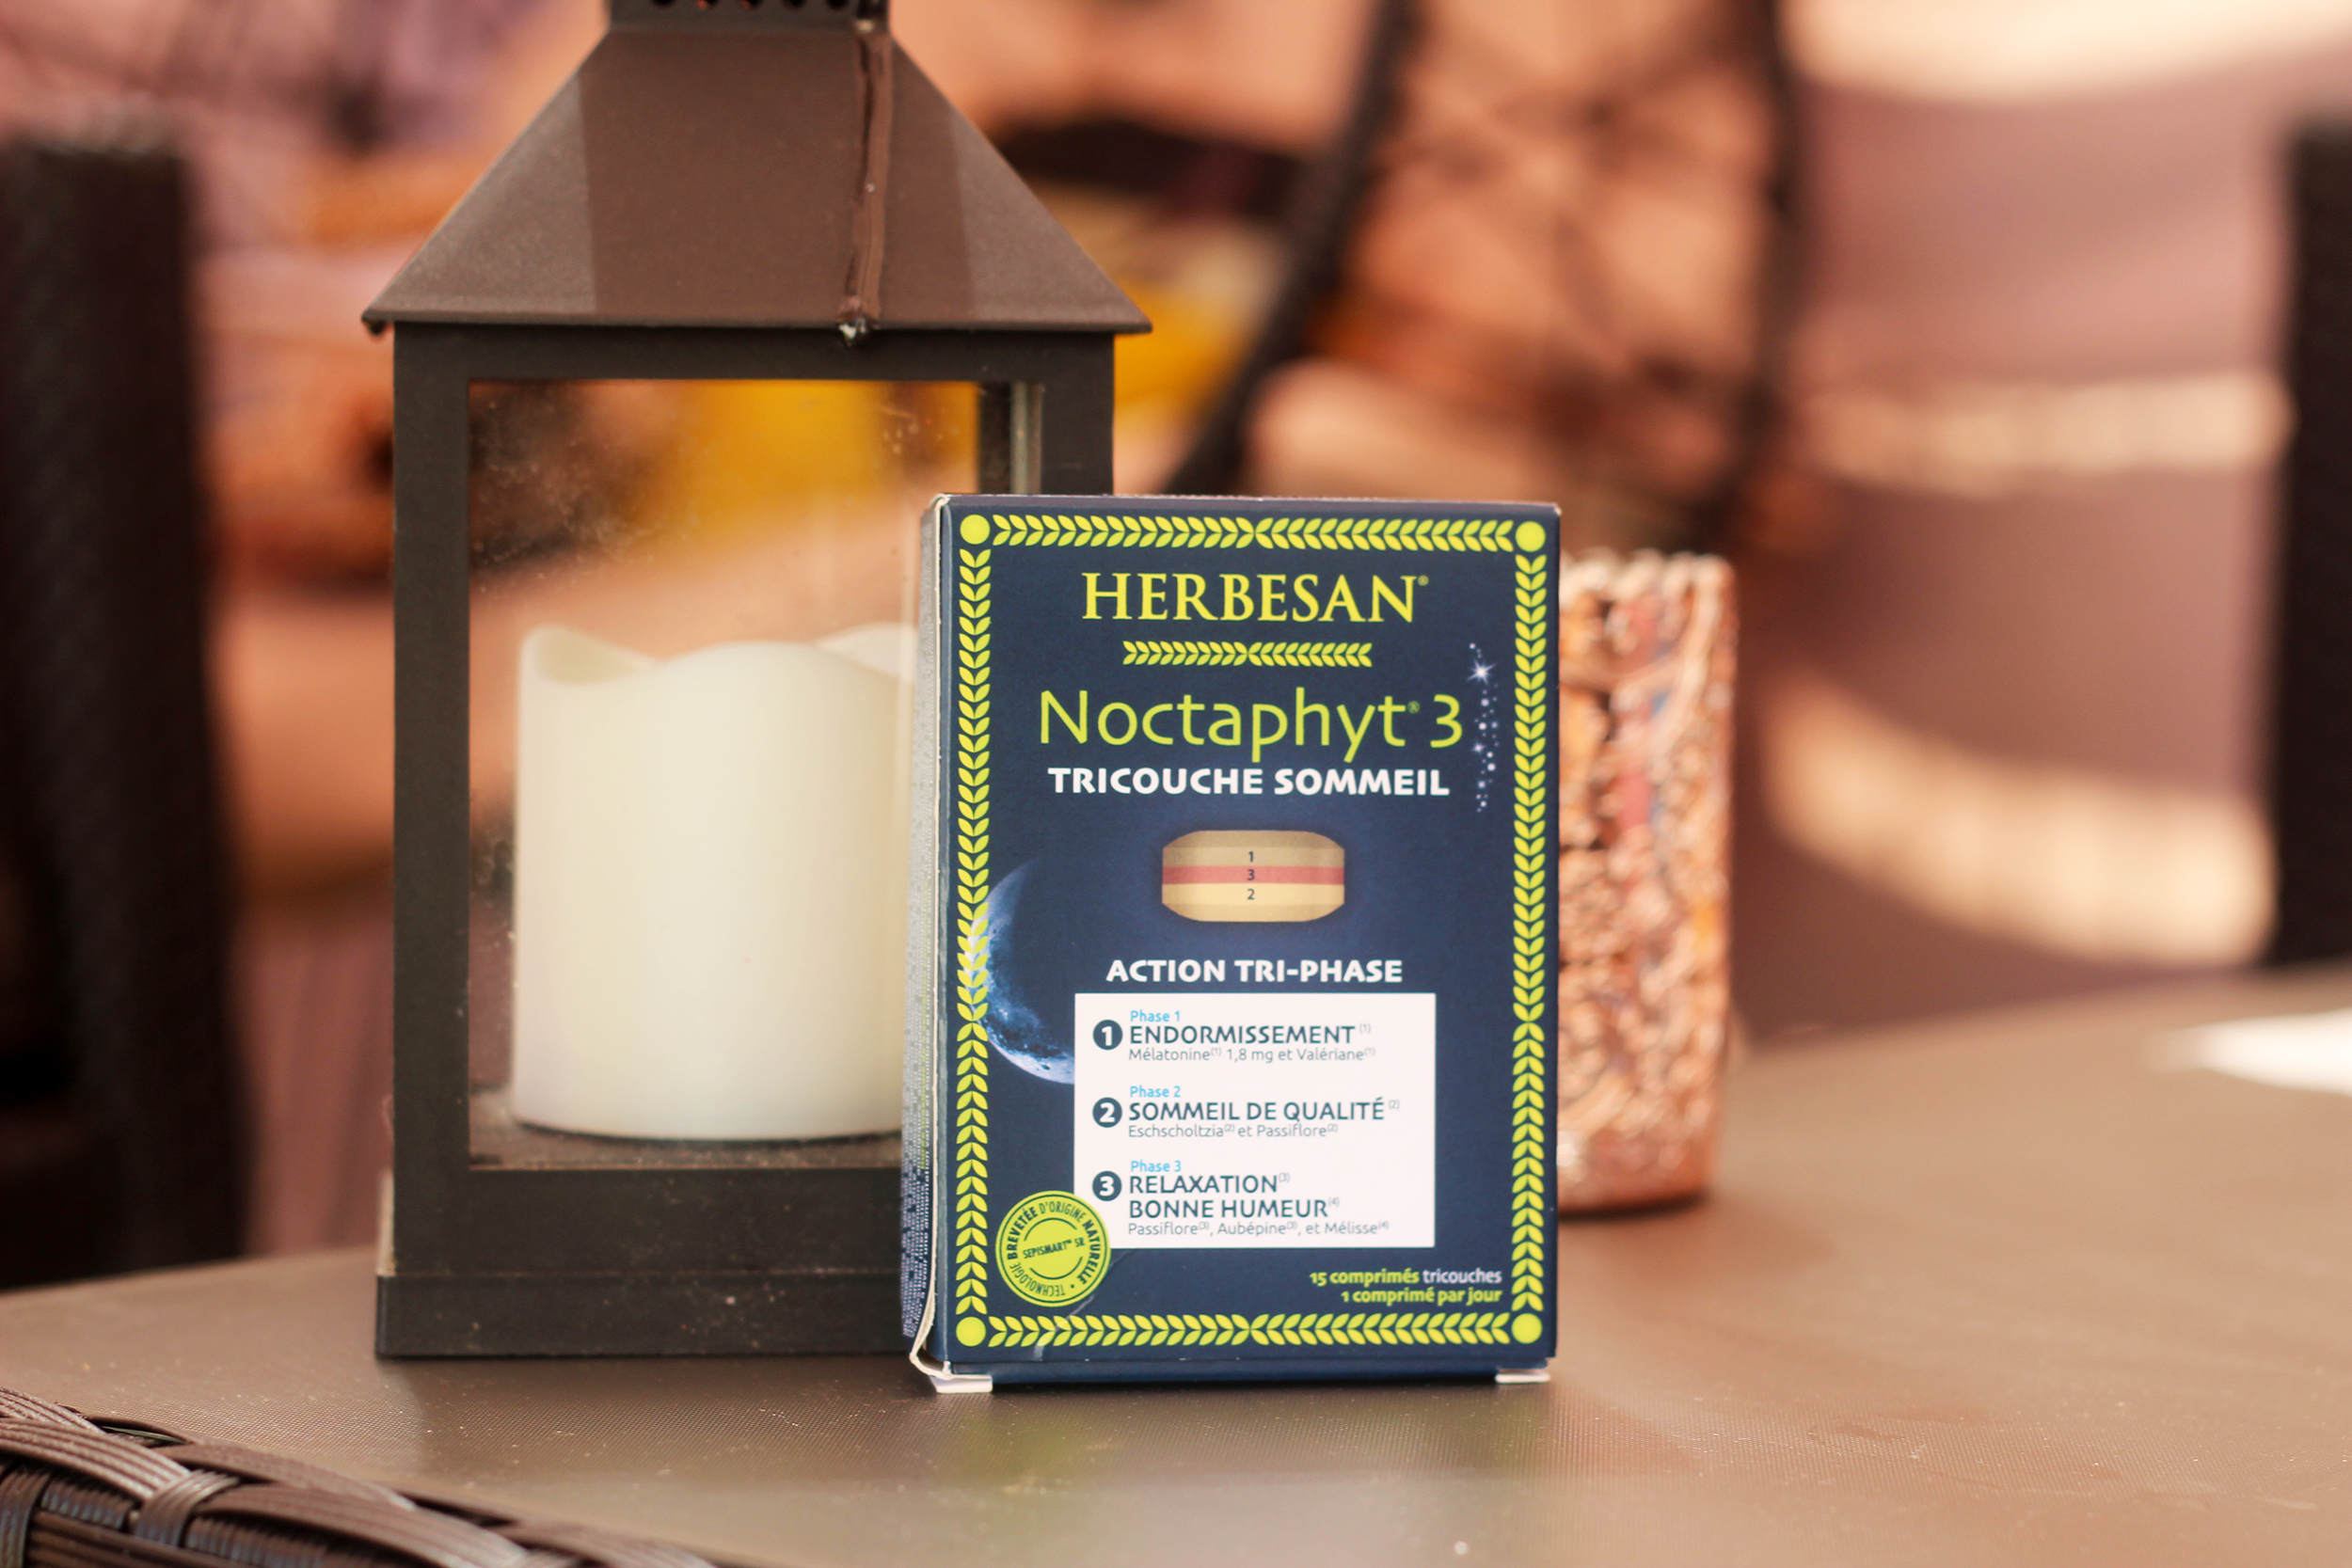 noctaphyt3 herbesan complement alimentaire sommeil 01